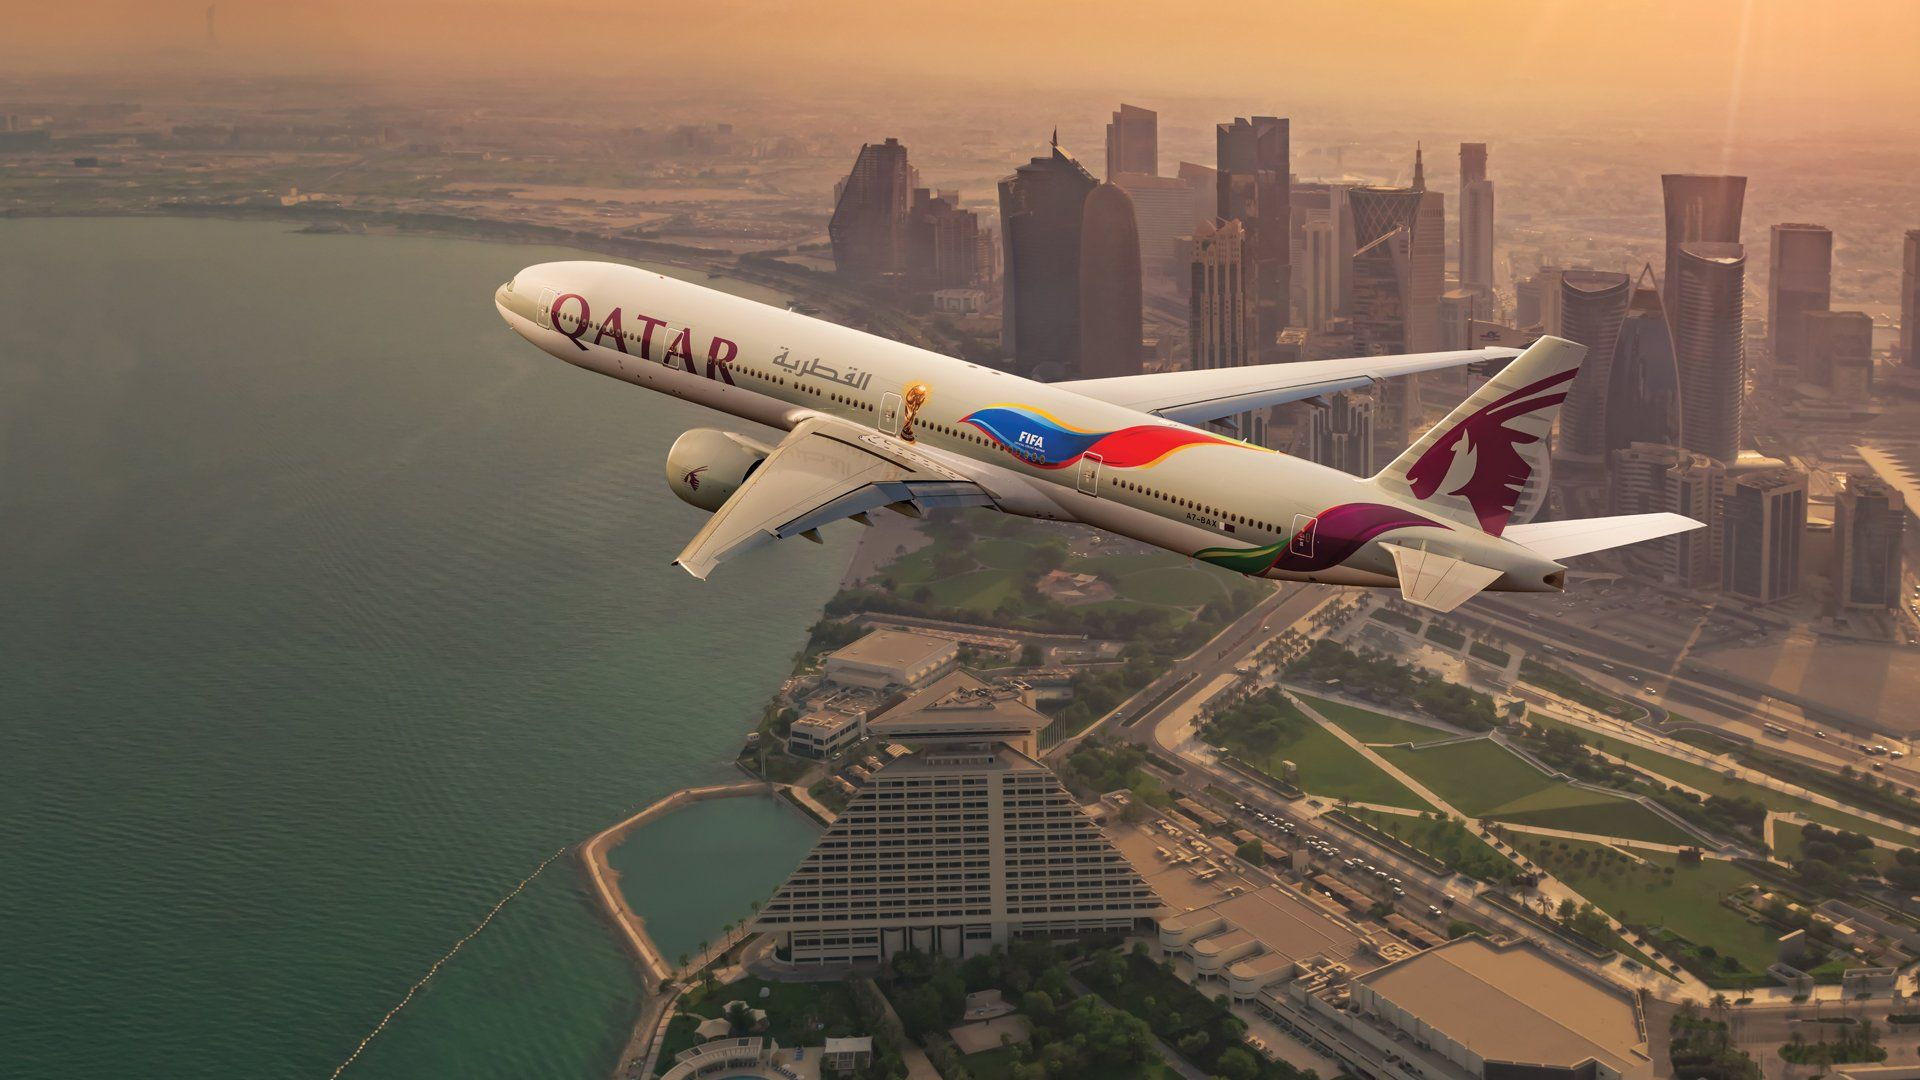 Qatar Airways Wallpapers Top Free Qatar Airways Backgrounds Wallpaperaccess